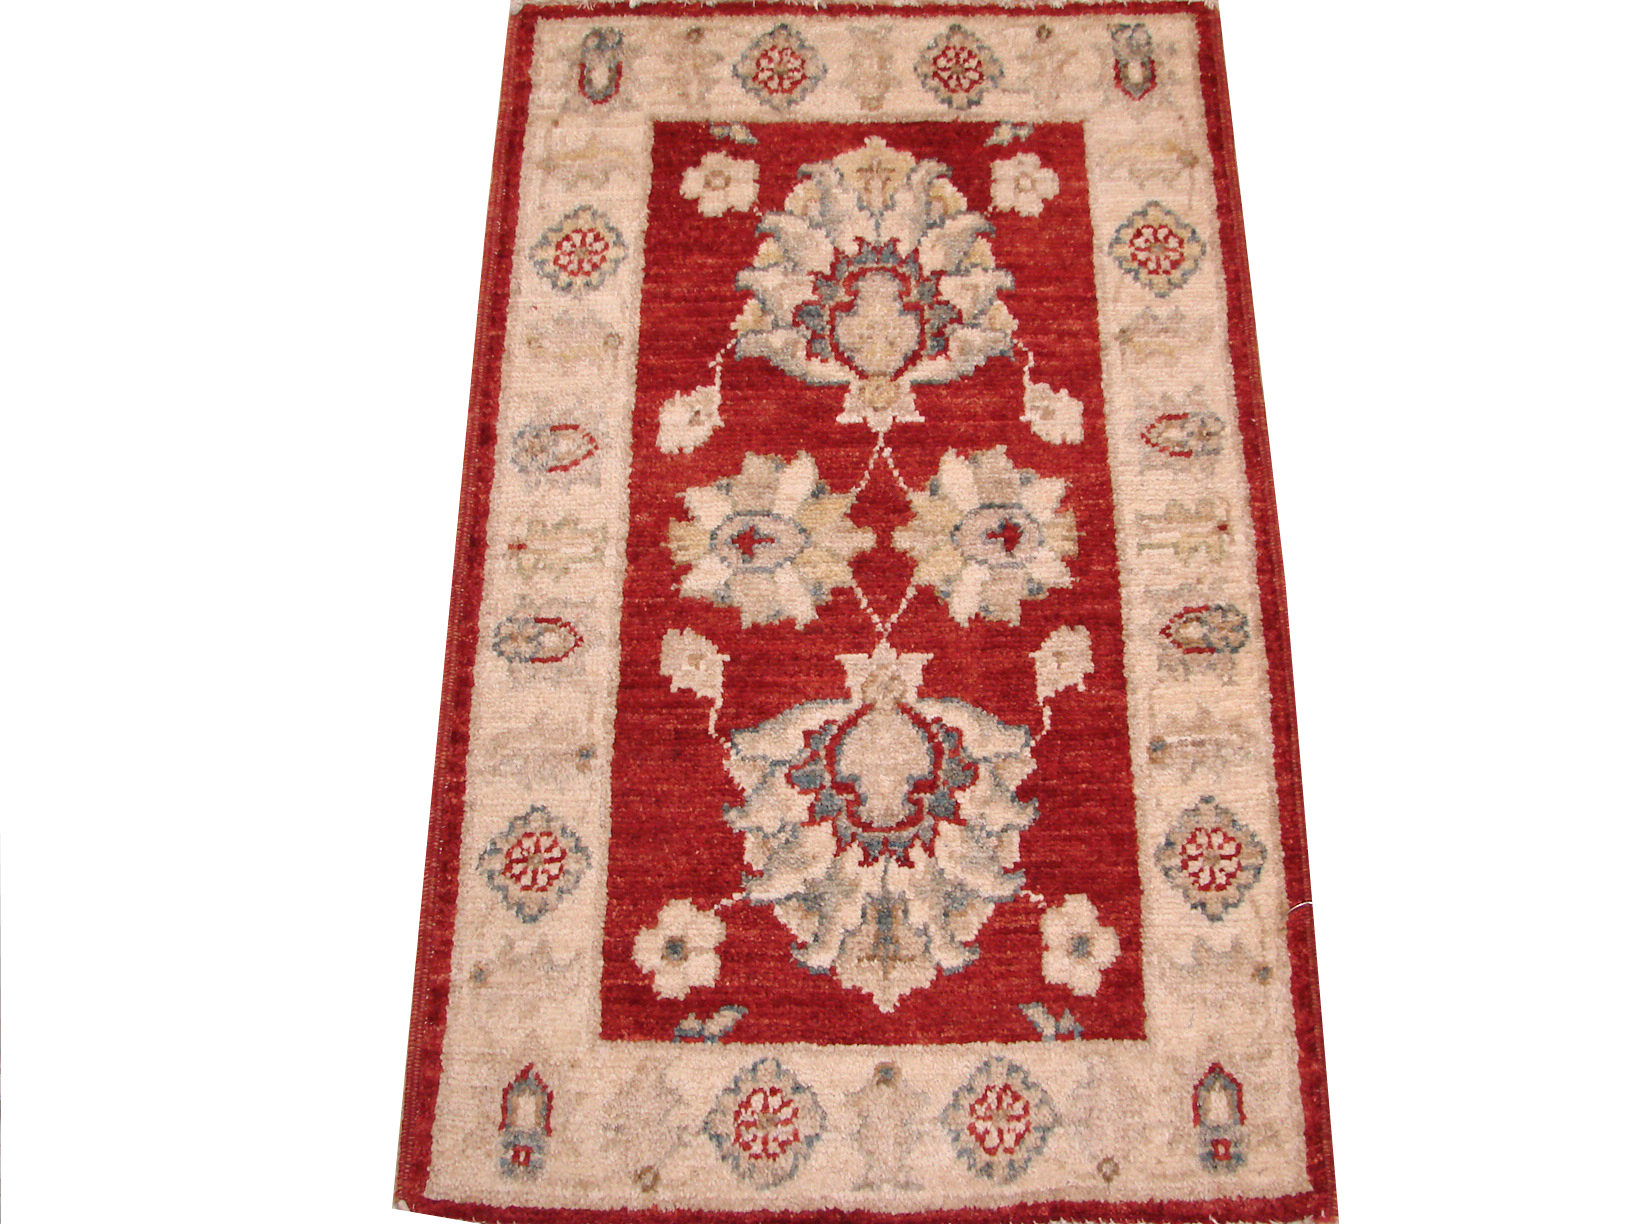 2X3 Peshawar Hand Knotted Wool Area Rug - MR13673